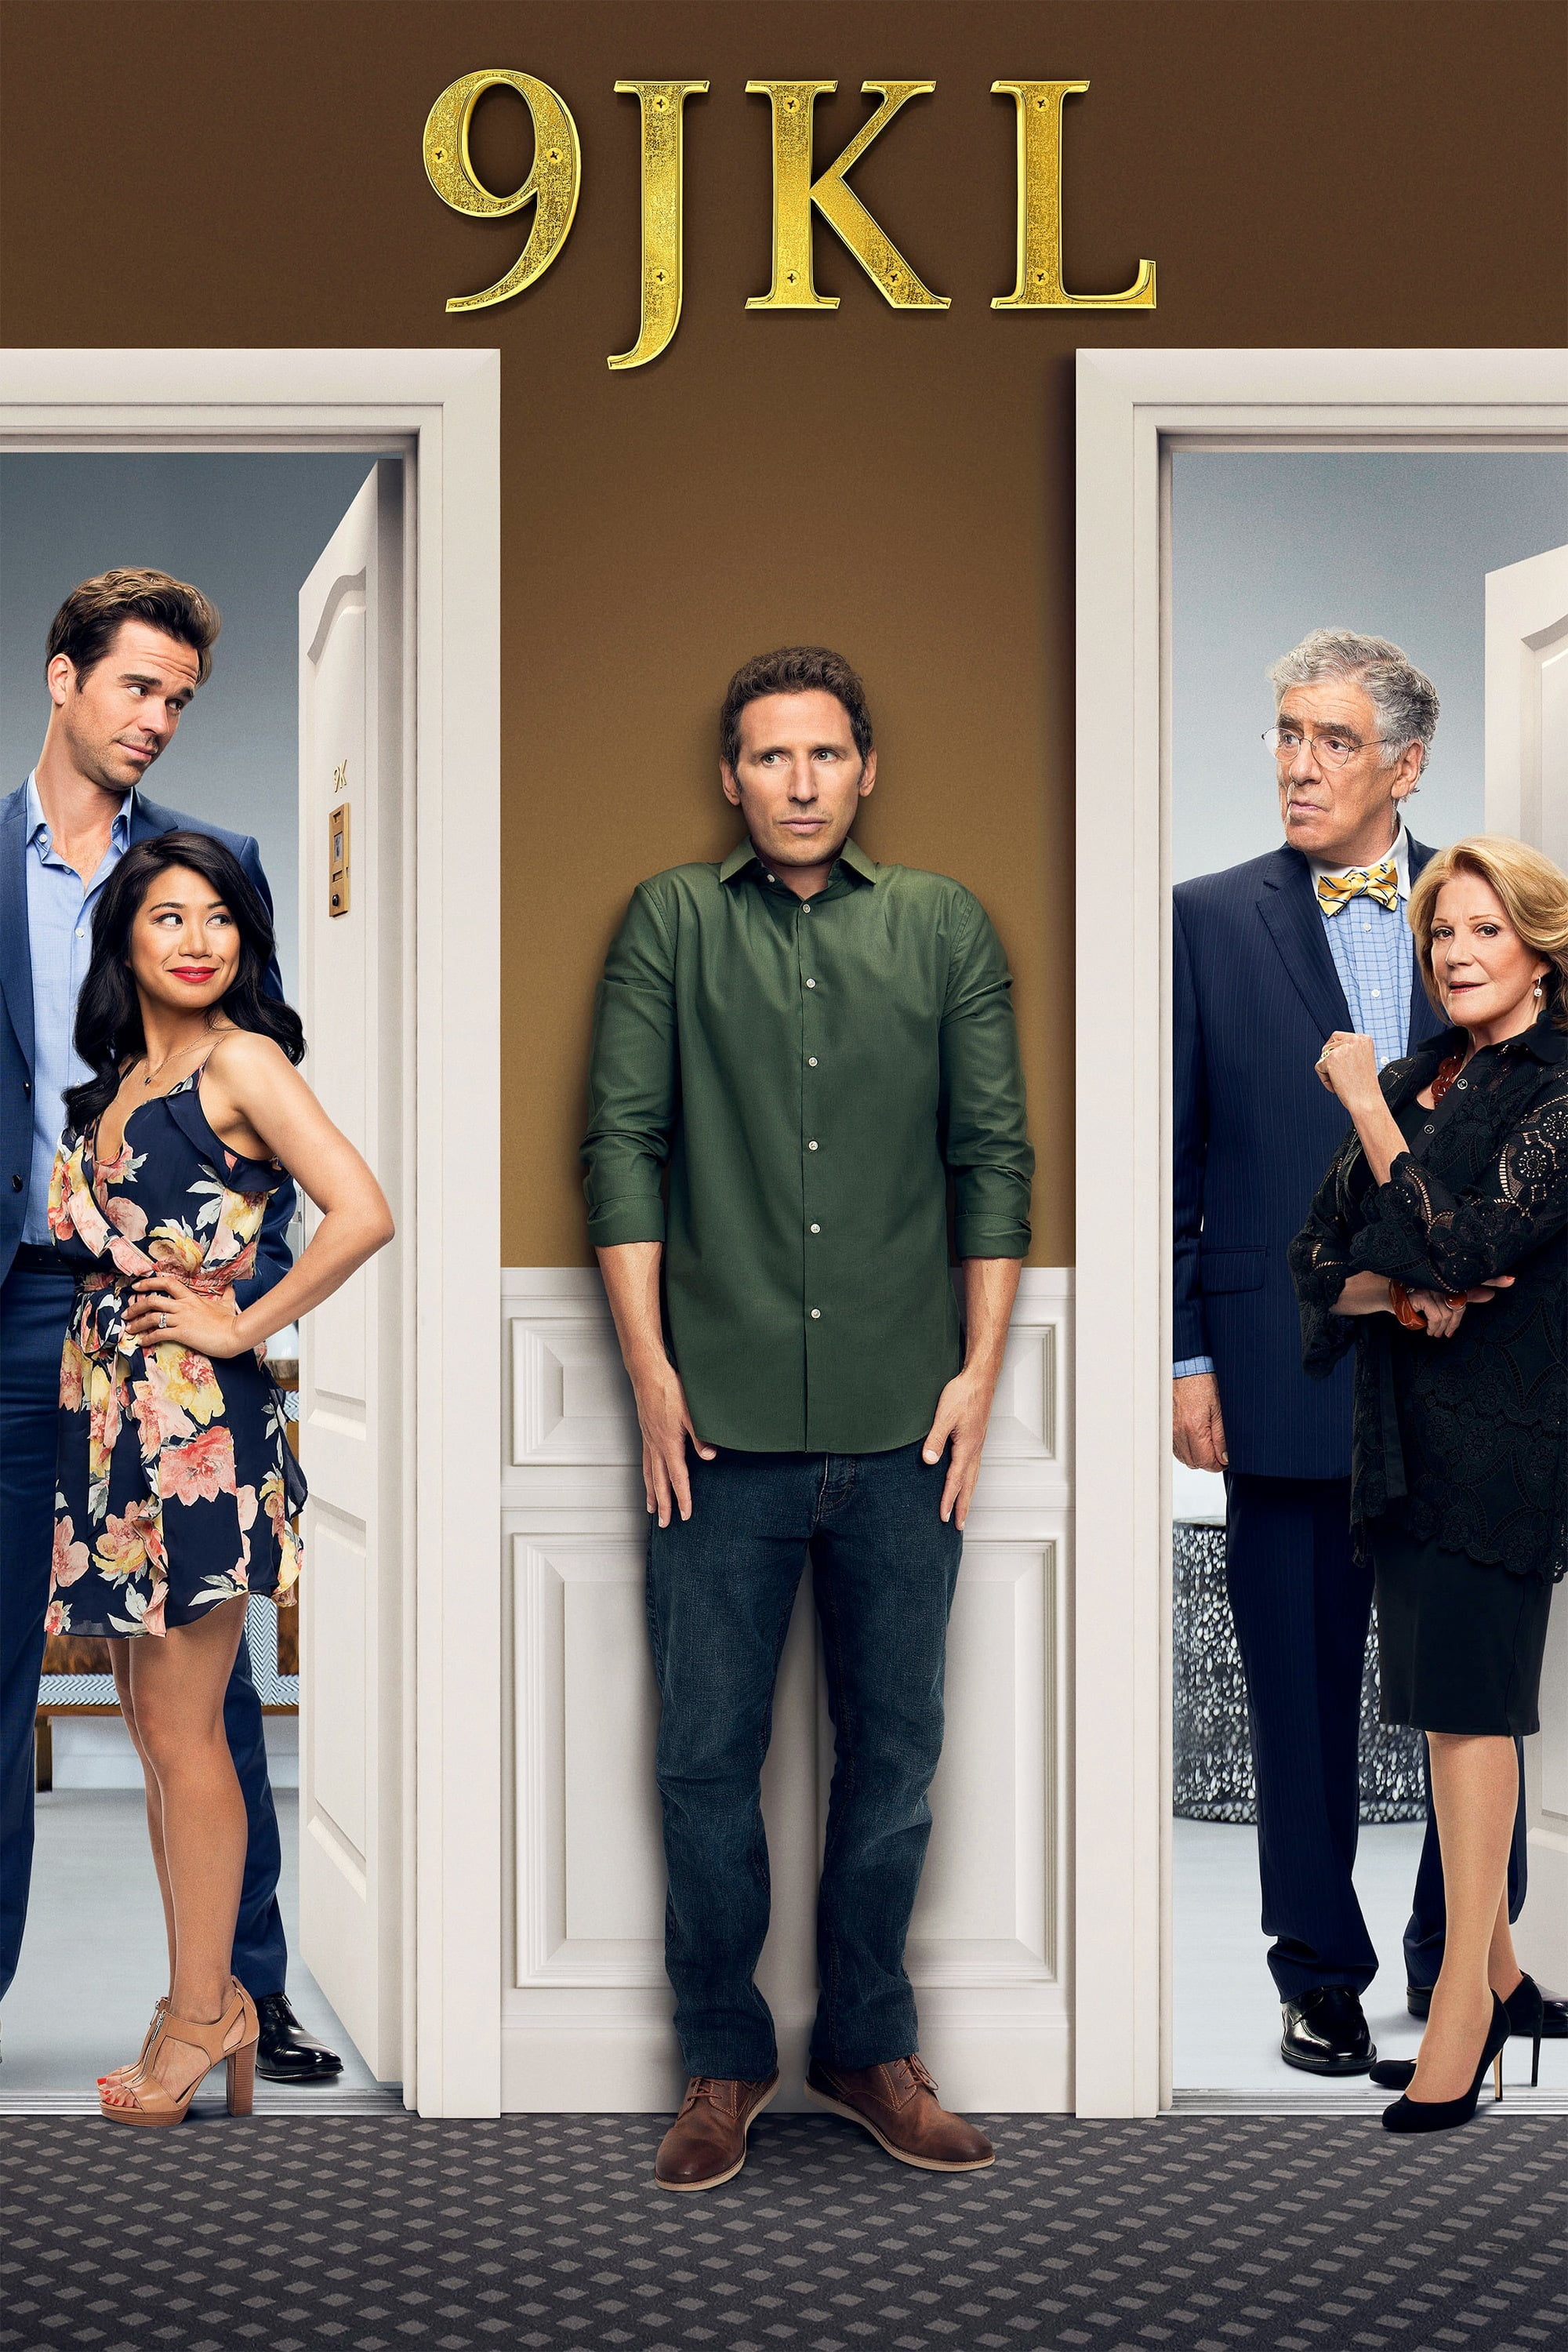 9JKL TV Shows About Dysfunctional Family